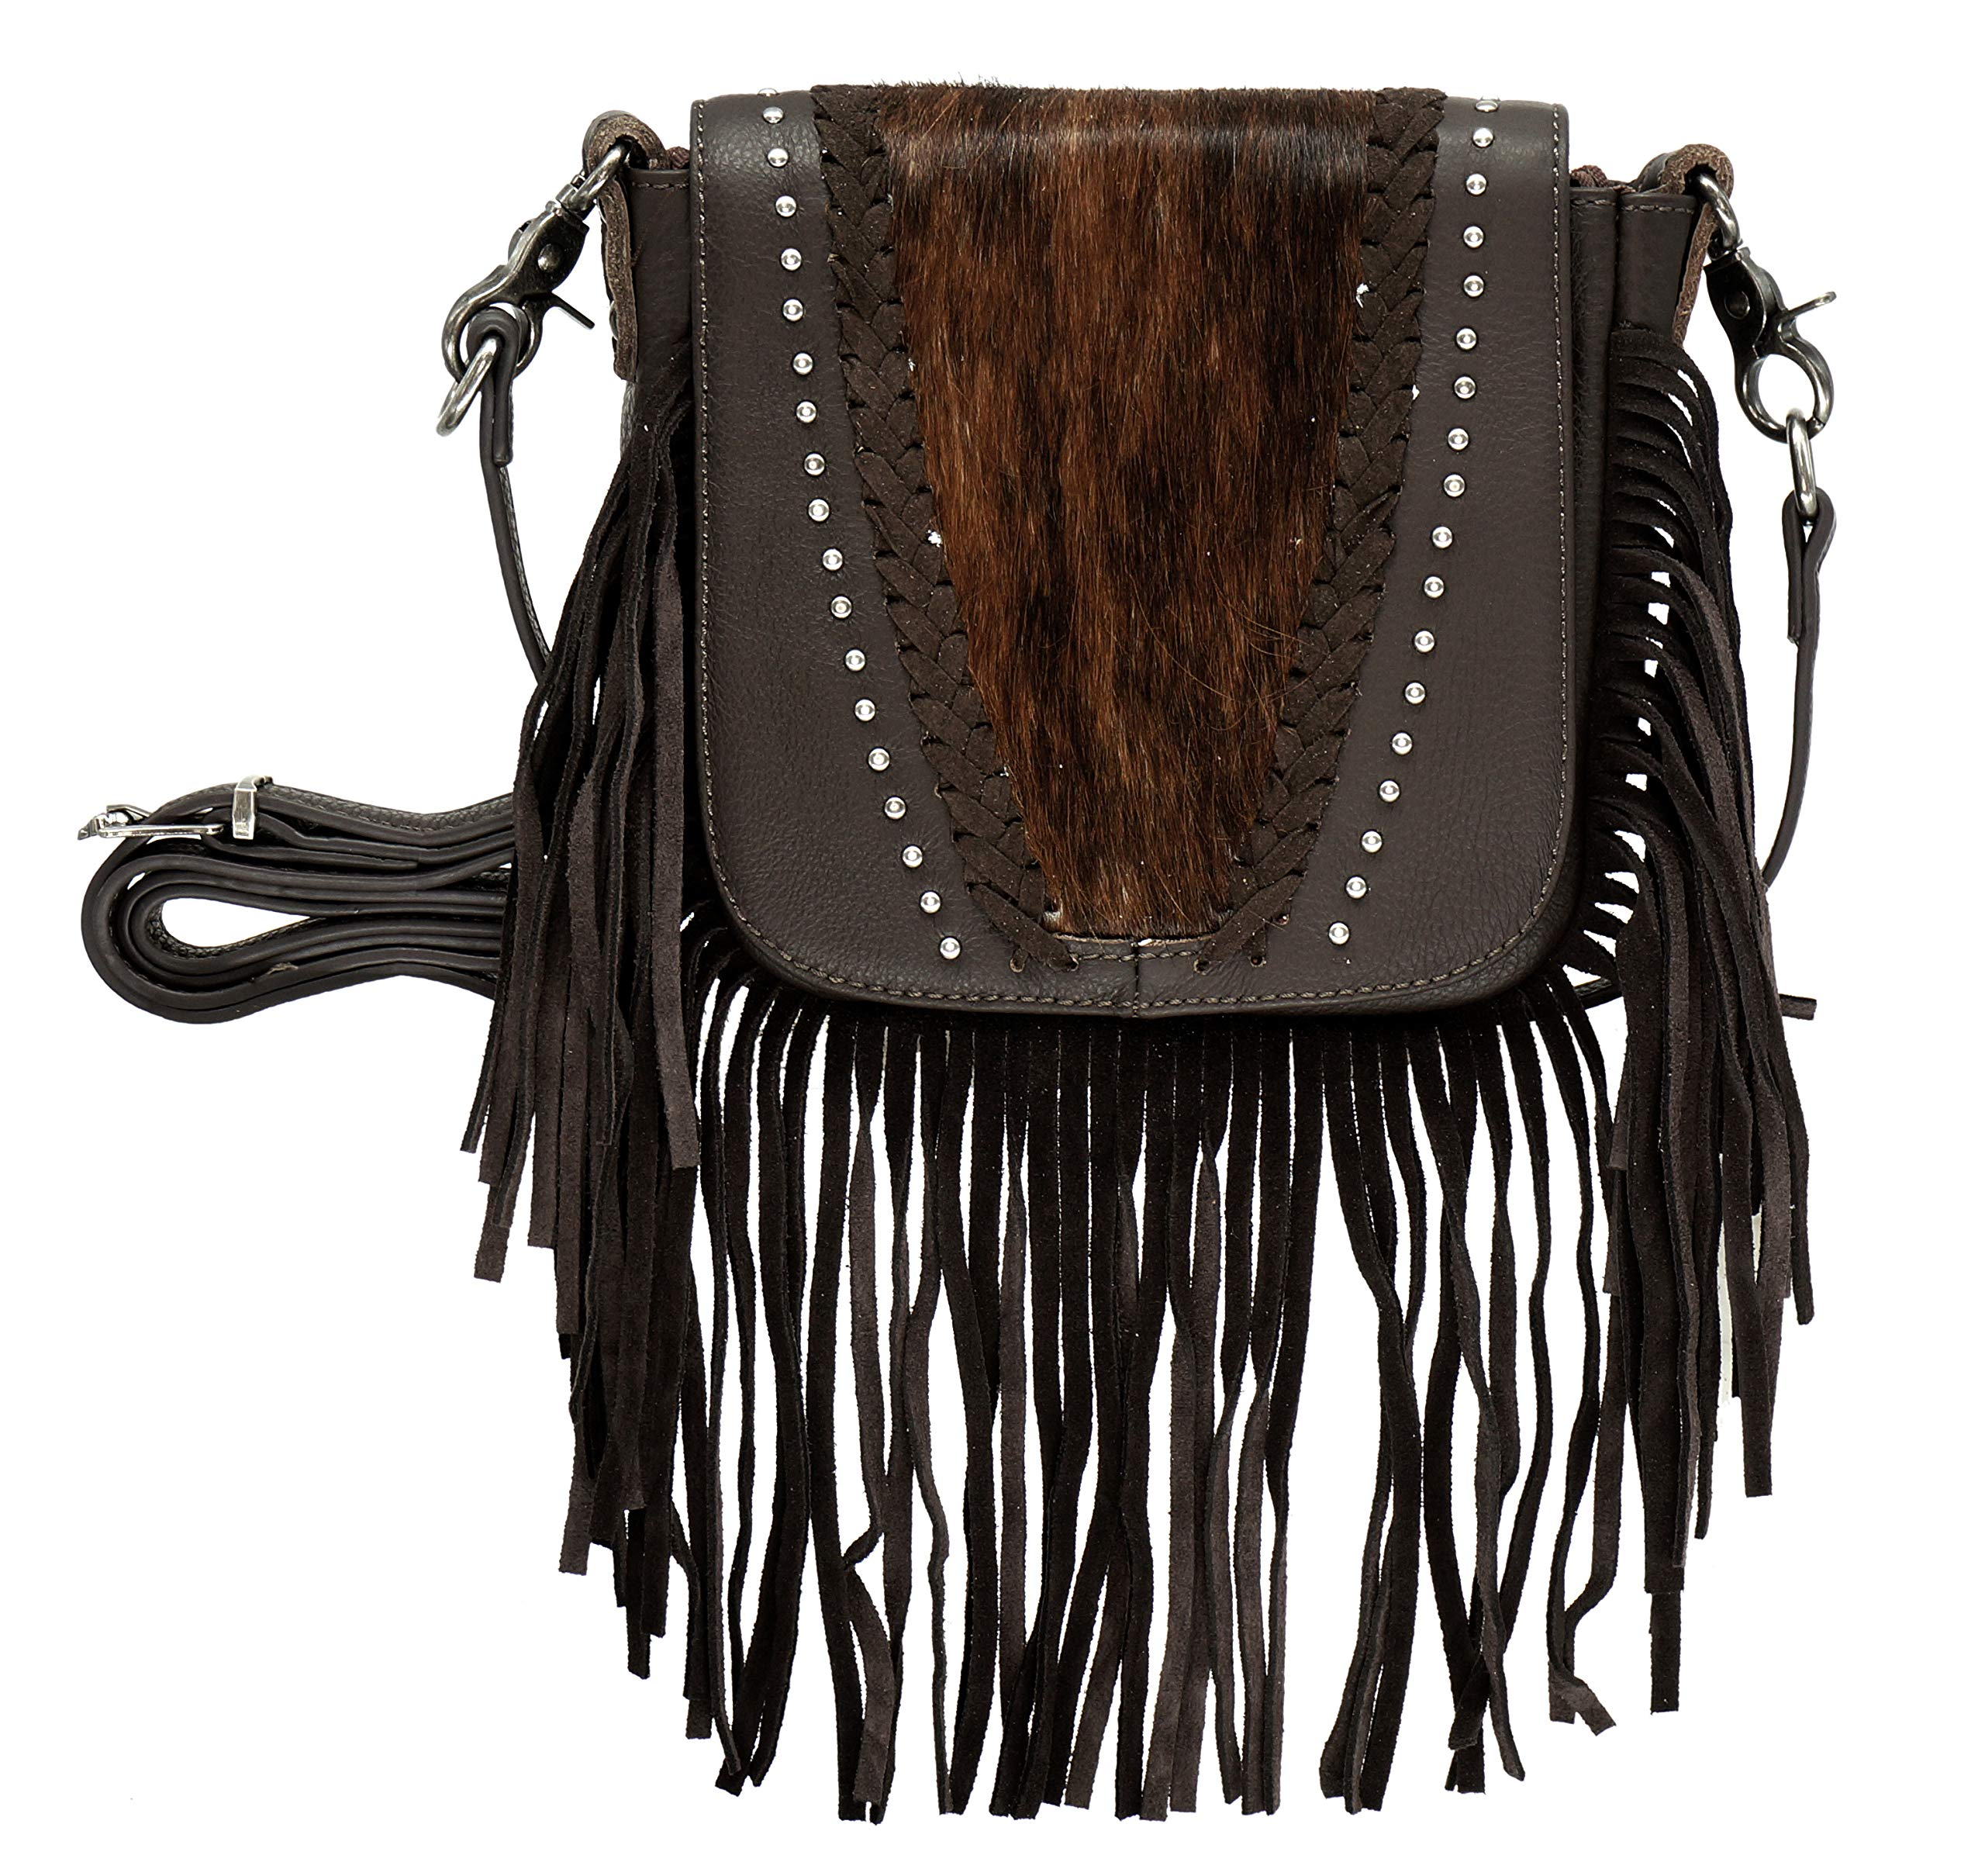 Montana West Real Leather Western Fringe Crossbody Small Purse For Women